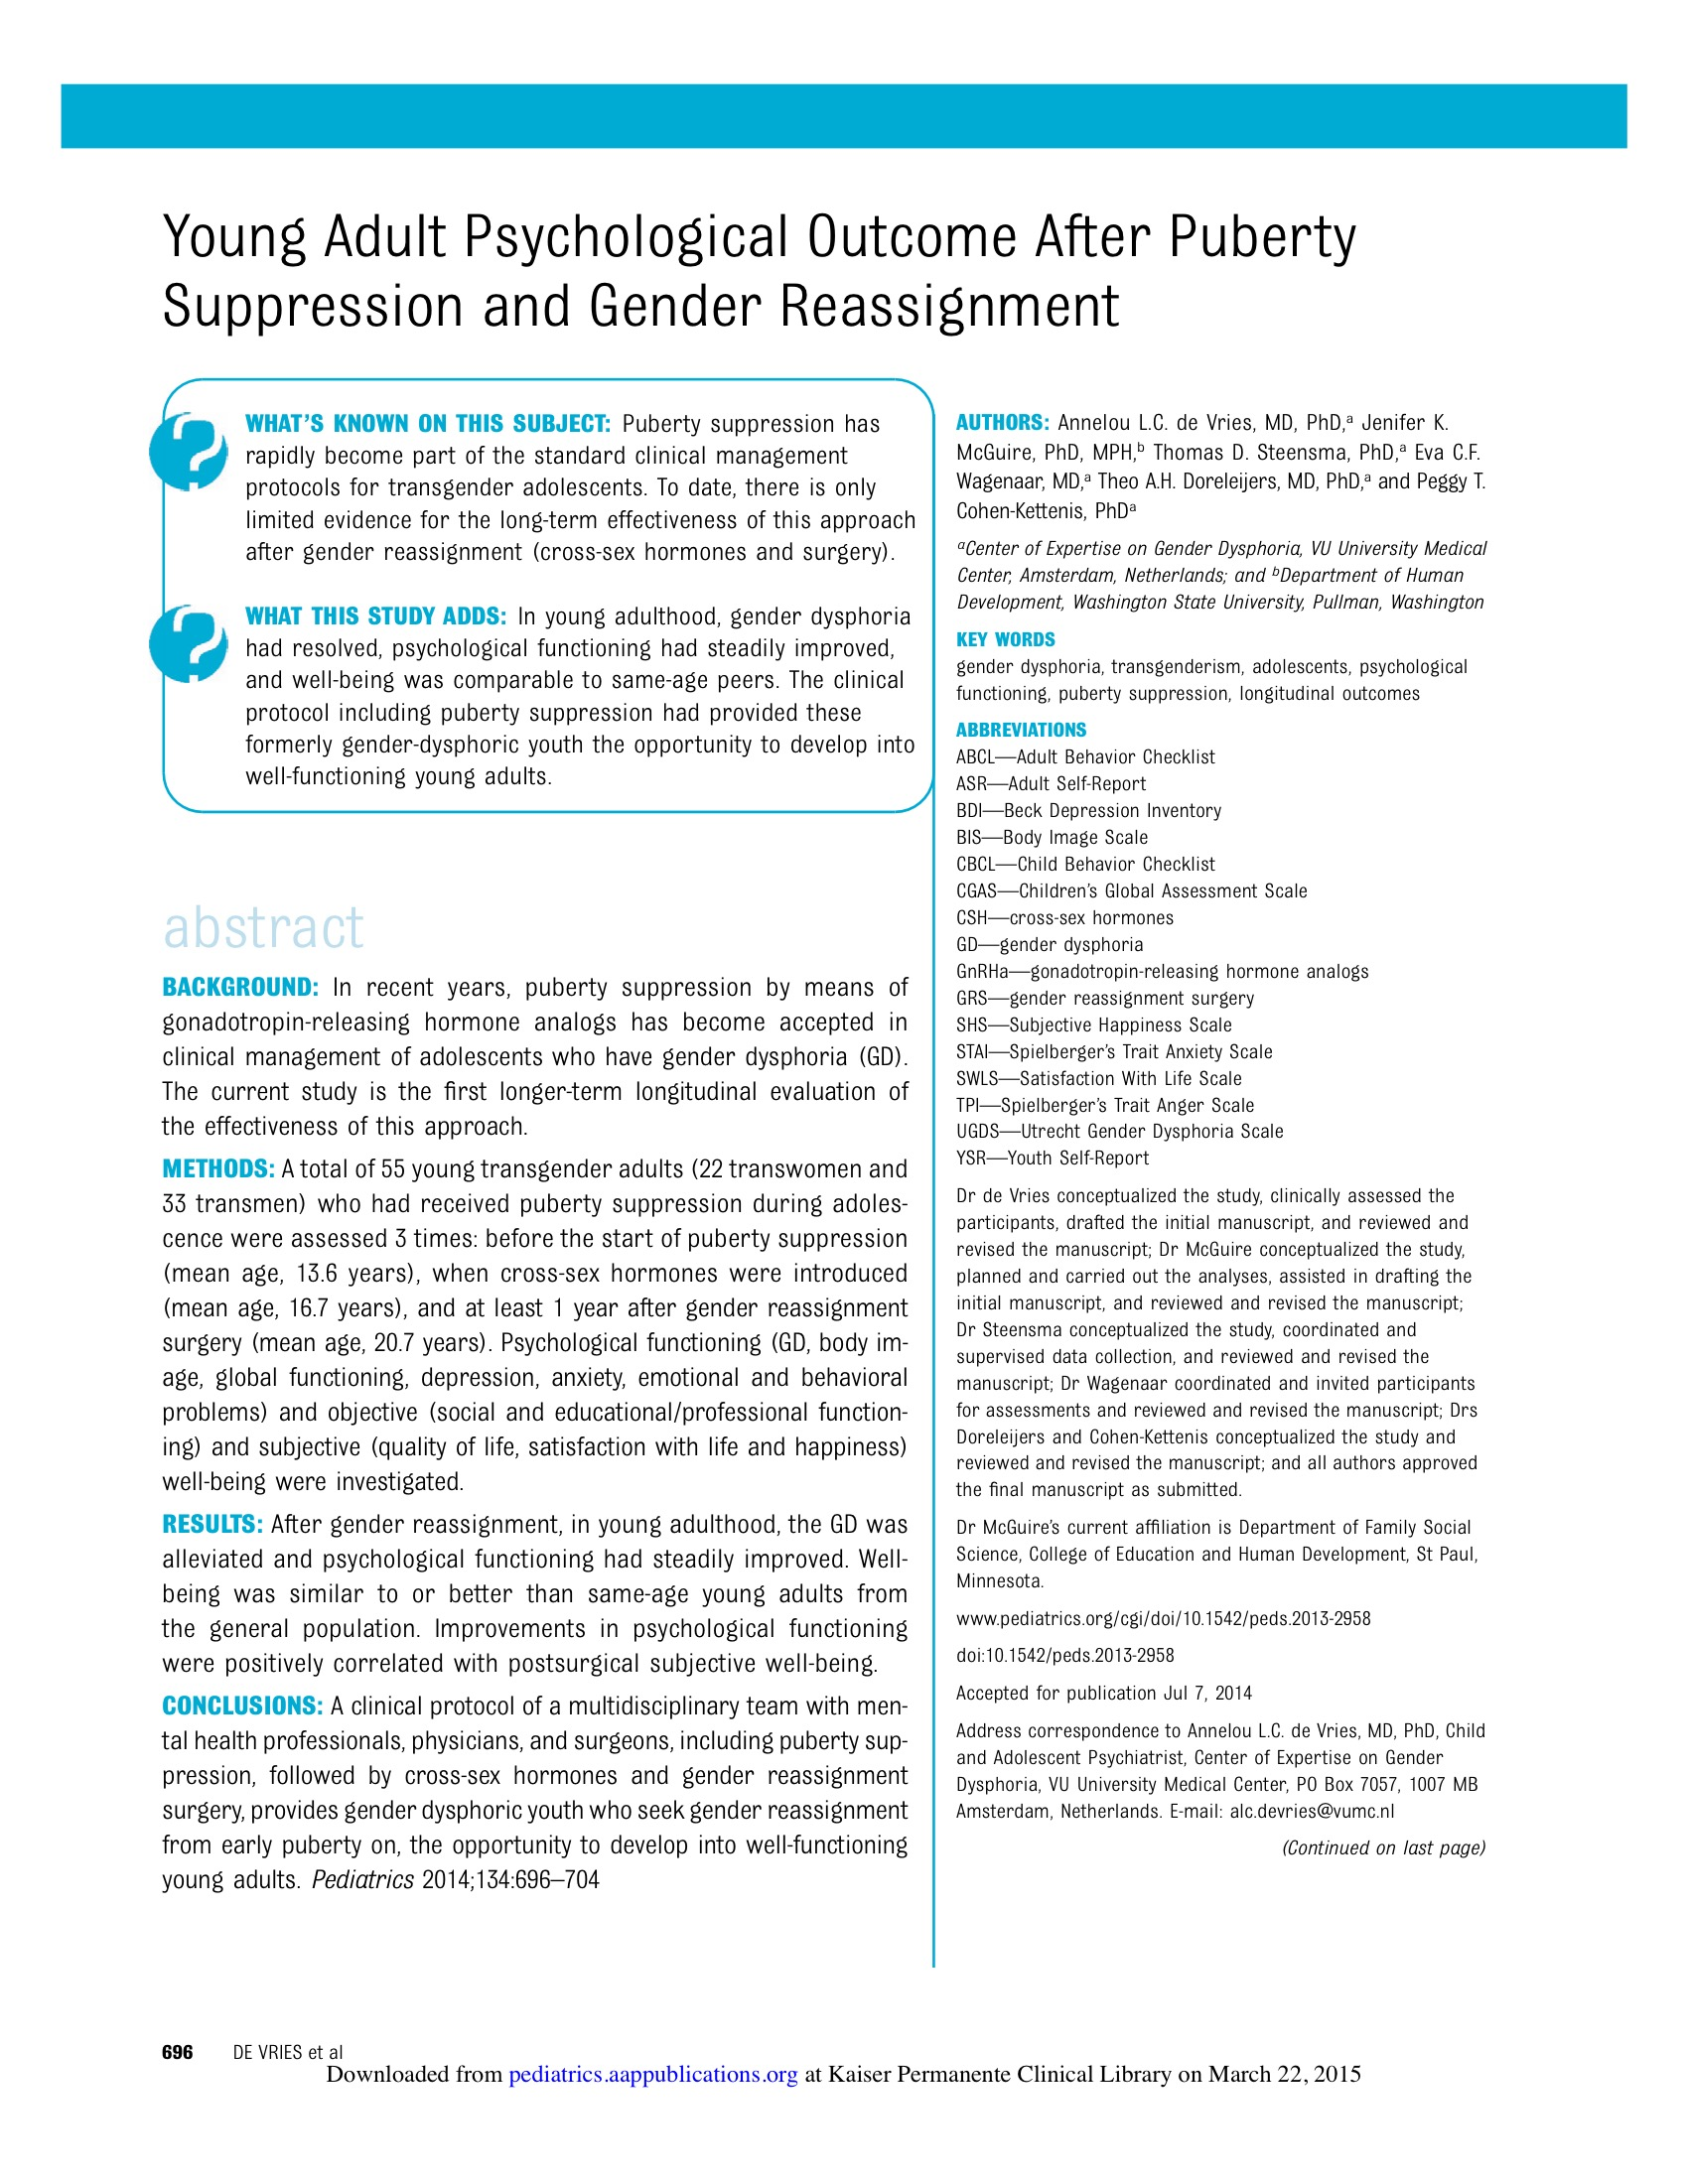 Just Read: Transgender Adolescents develop into well adults with